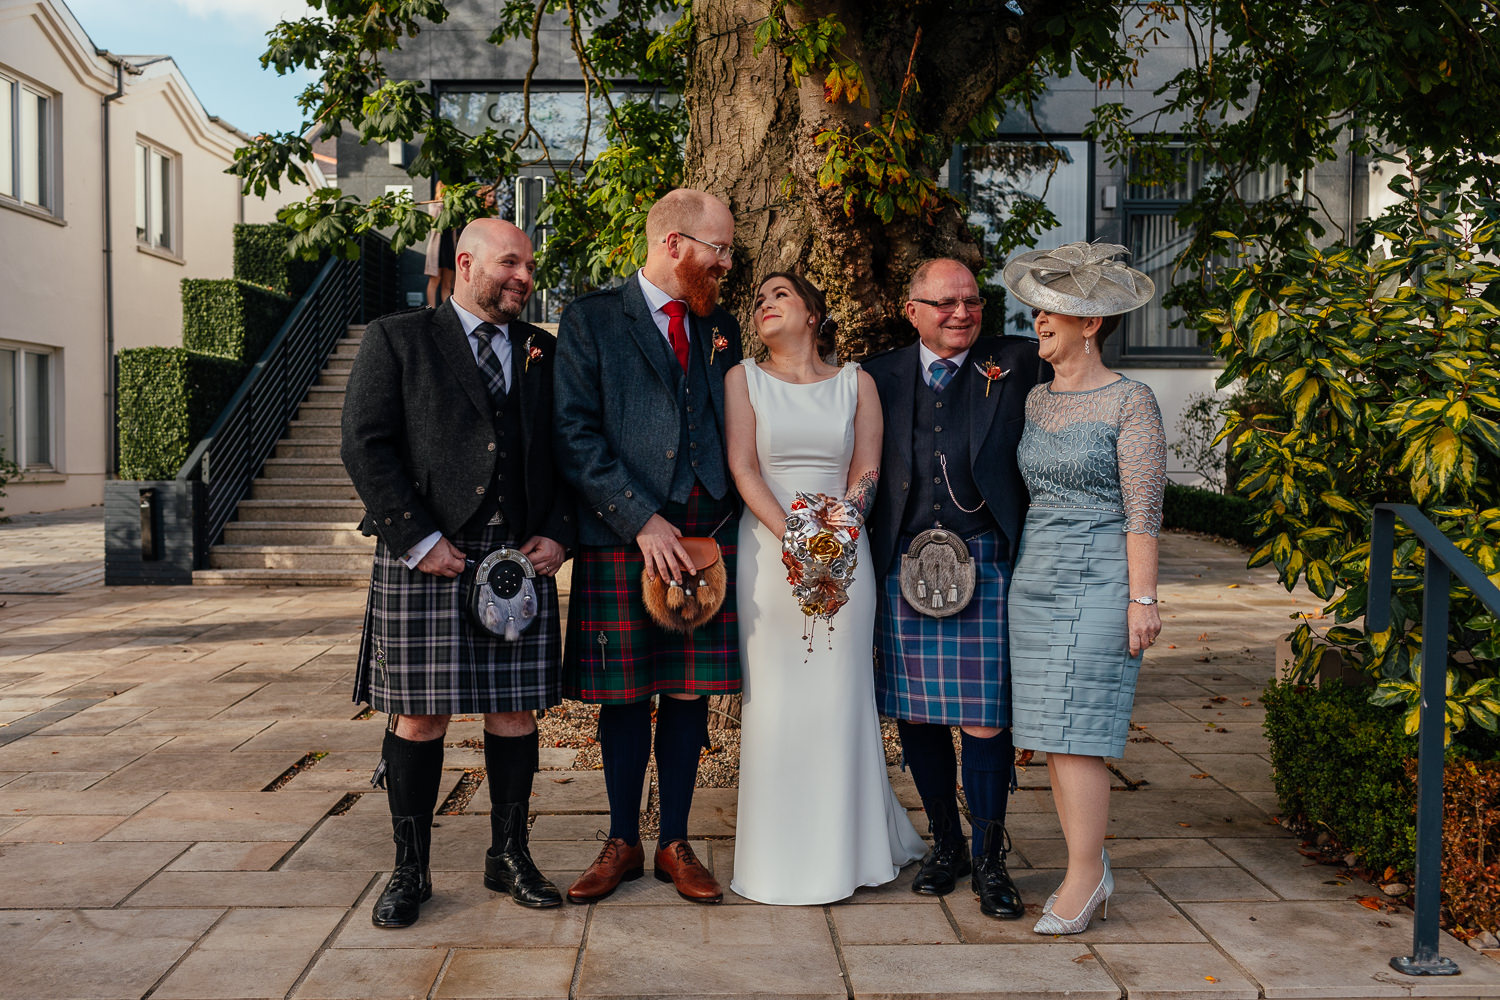 chester hotel wedding aberdeen outdoor family photos courtyard